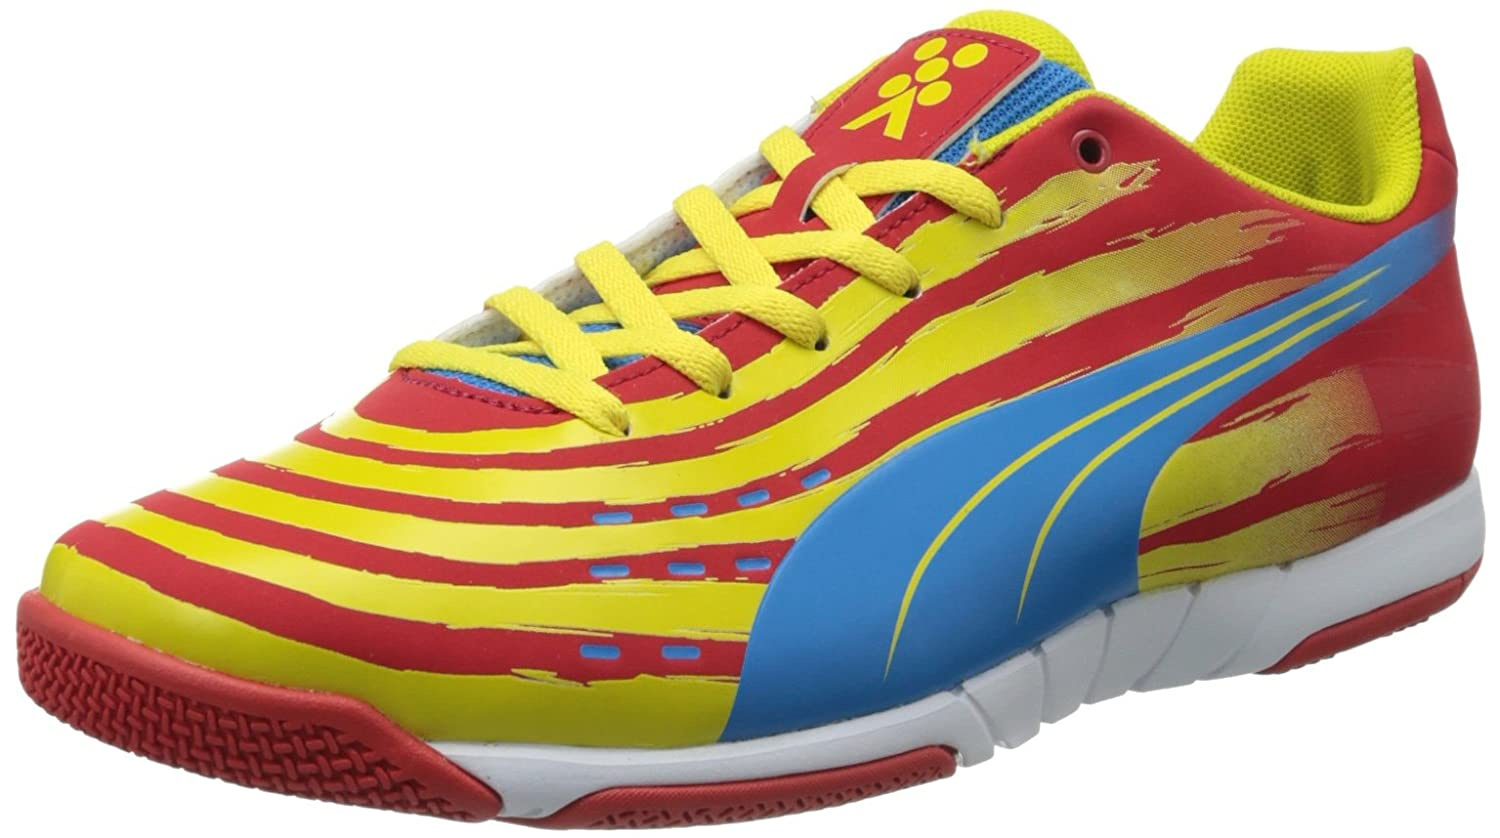 PUMA メンズ B00DOL3NC4High Risk Red/Blue Aster/Vibrant Yellow/White 12 mens_us